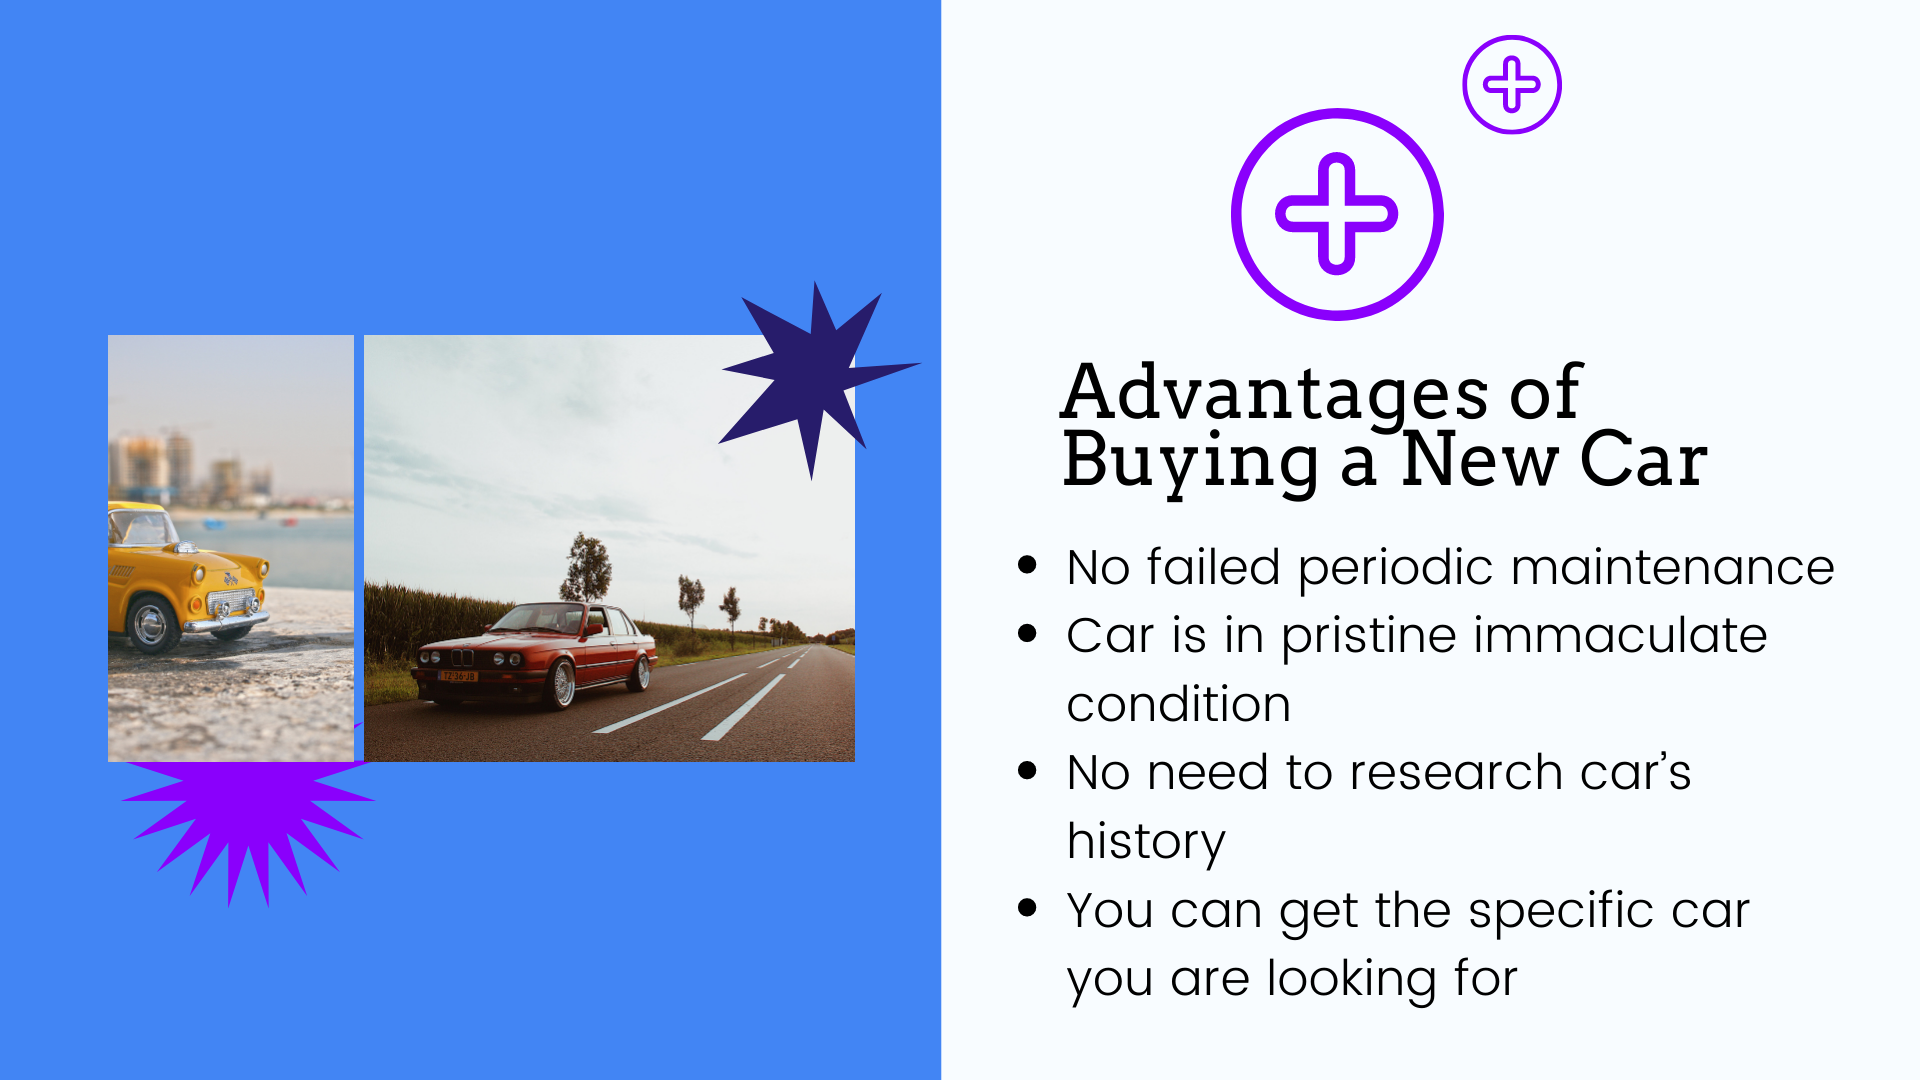 1: No failed periodic maintenance. 2: Car is in pristine immaculate condition. 3:No need to research car's history. 4:You can get the specific car you are looking for.